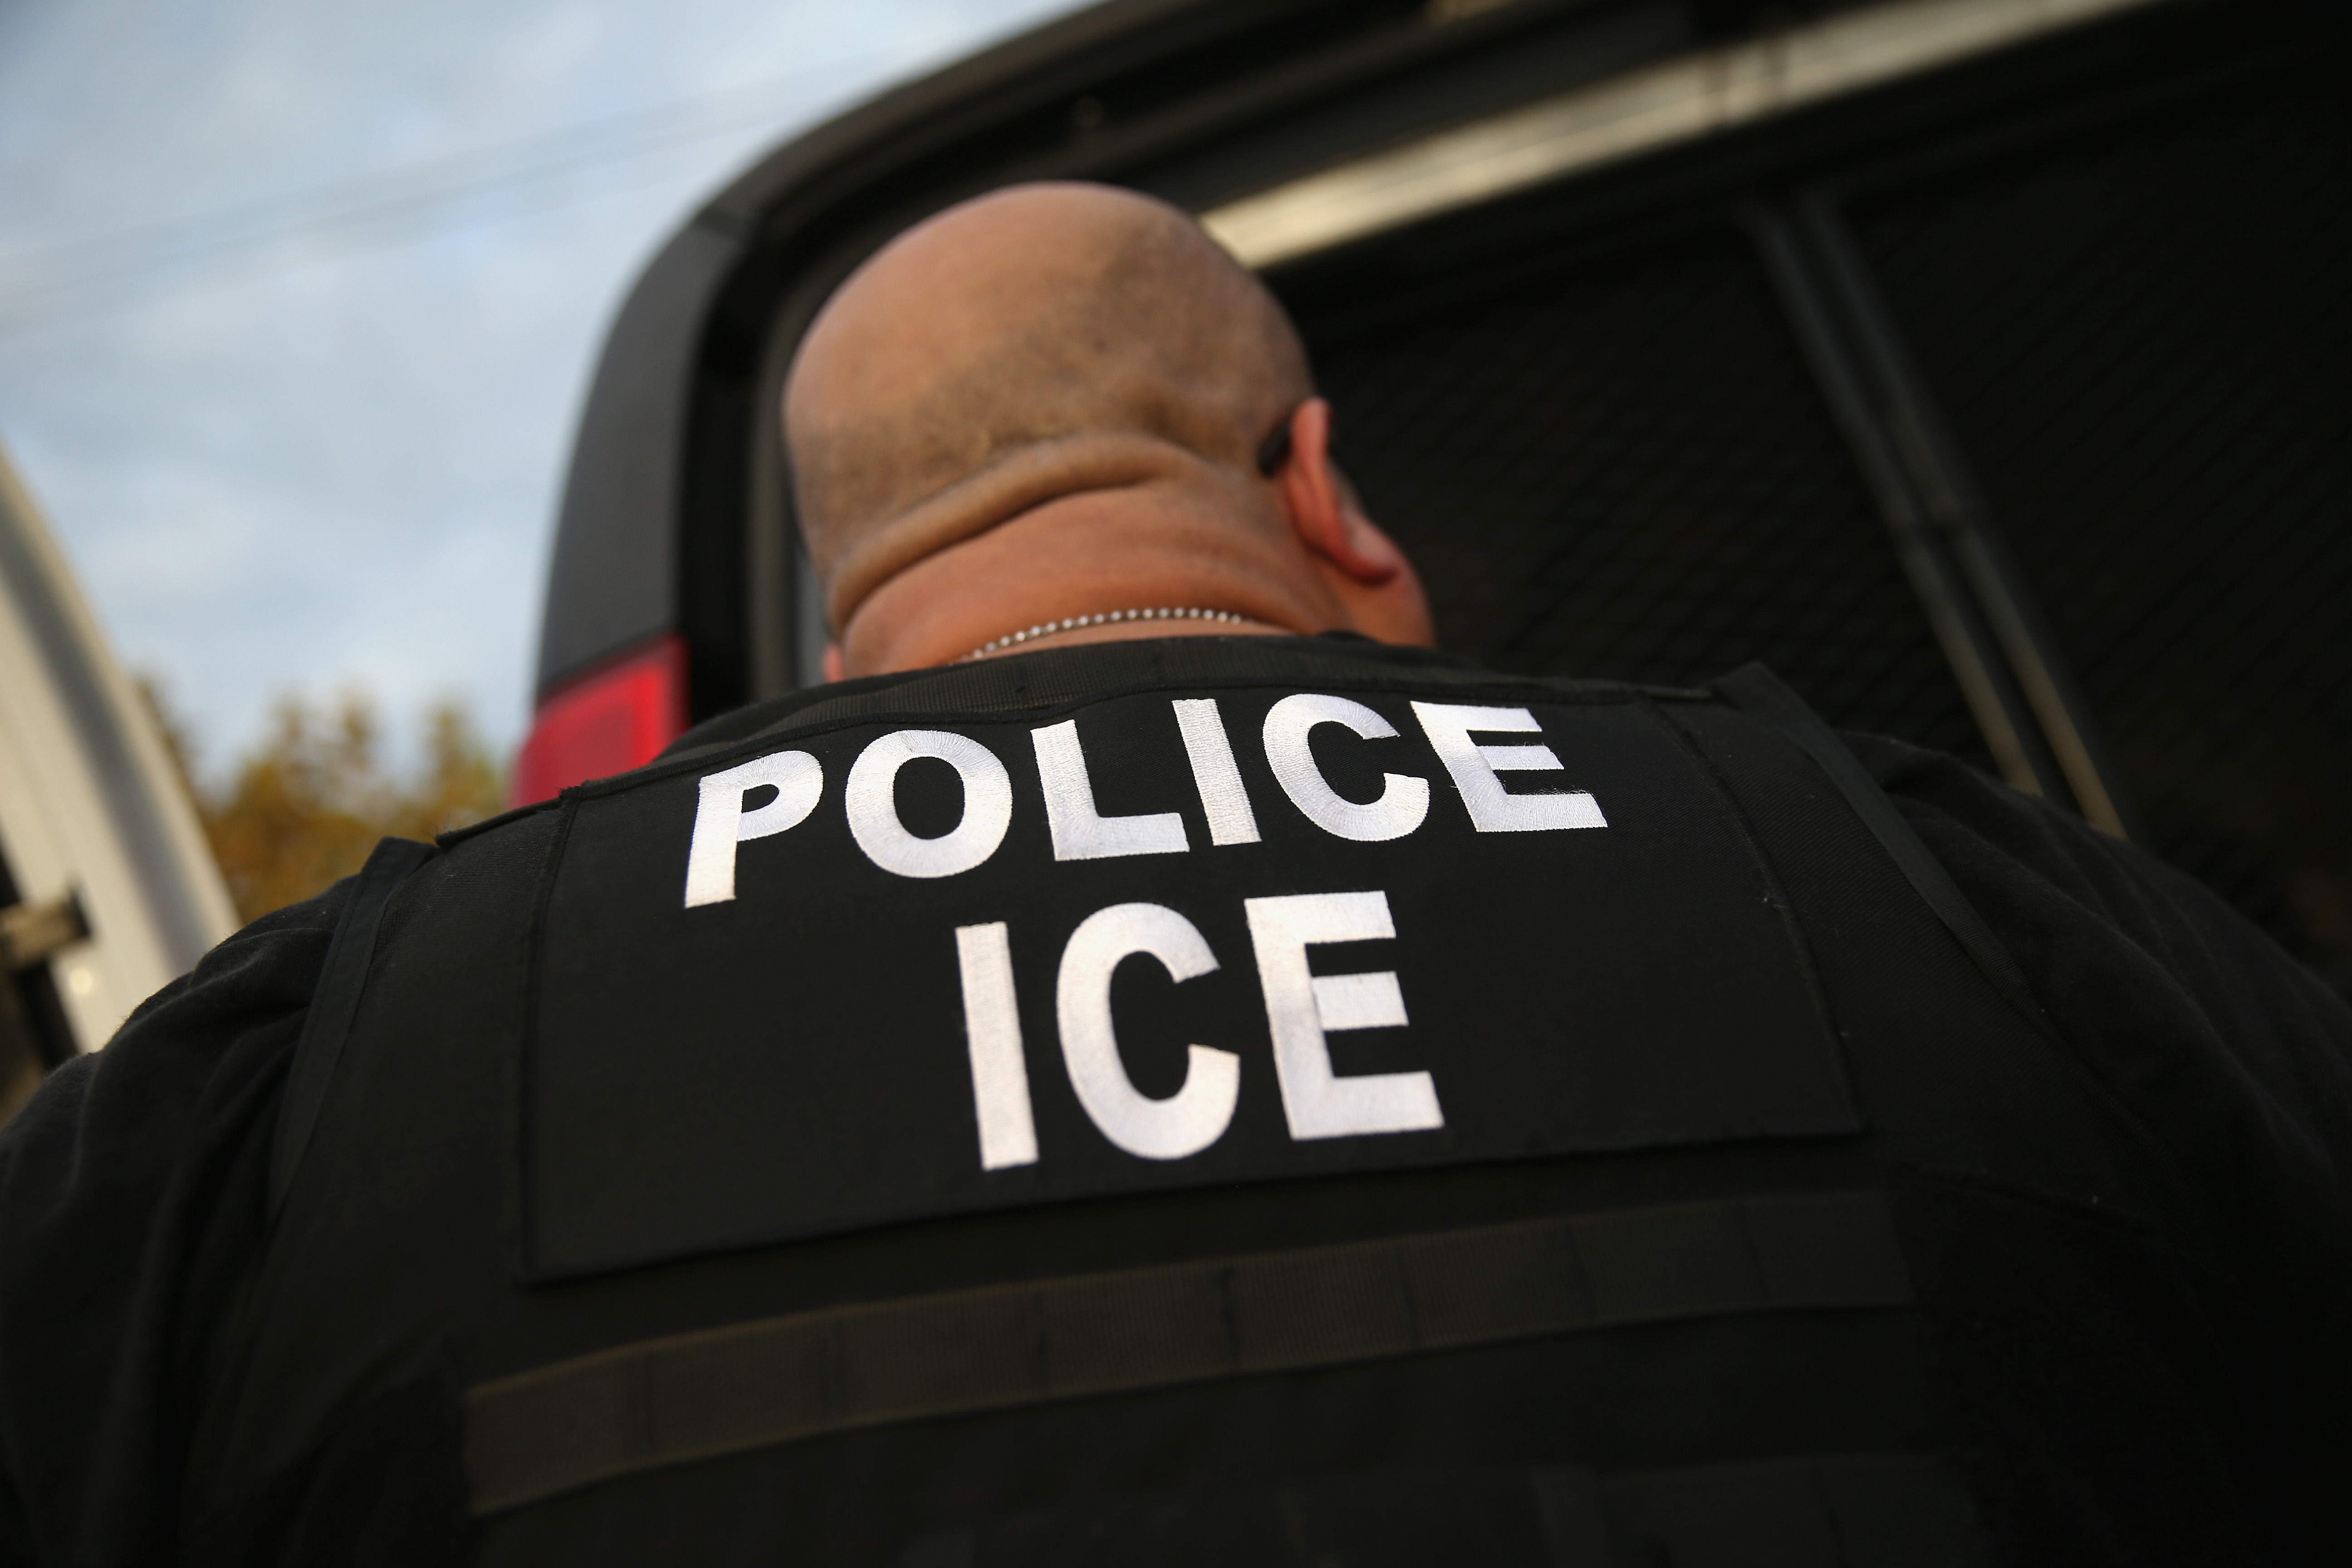 Suffolk County Sheriff's Department ends relationship with ICE